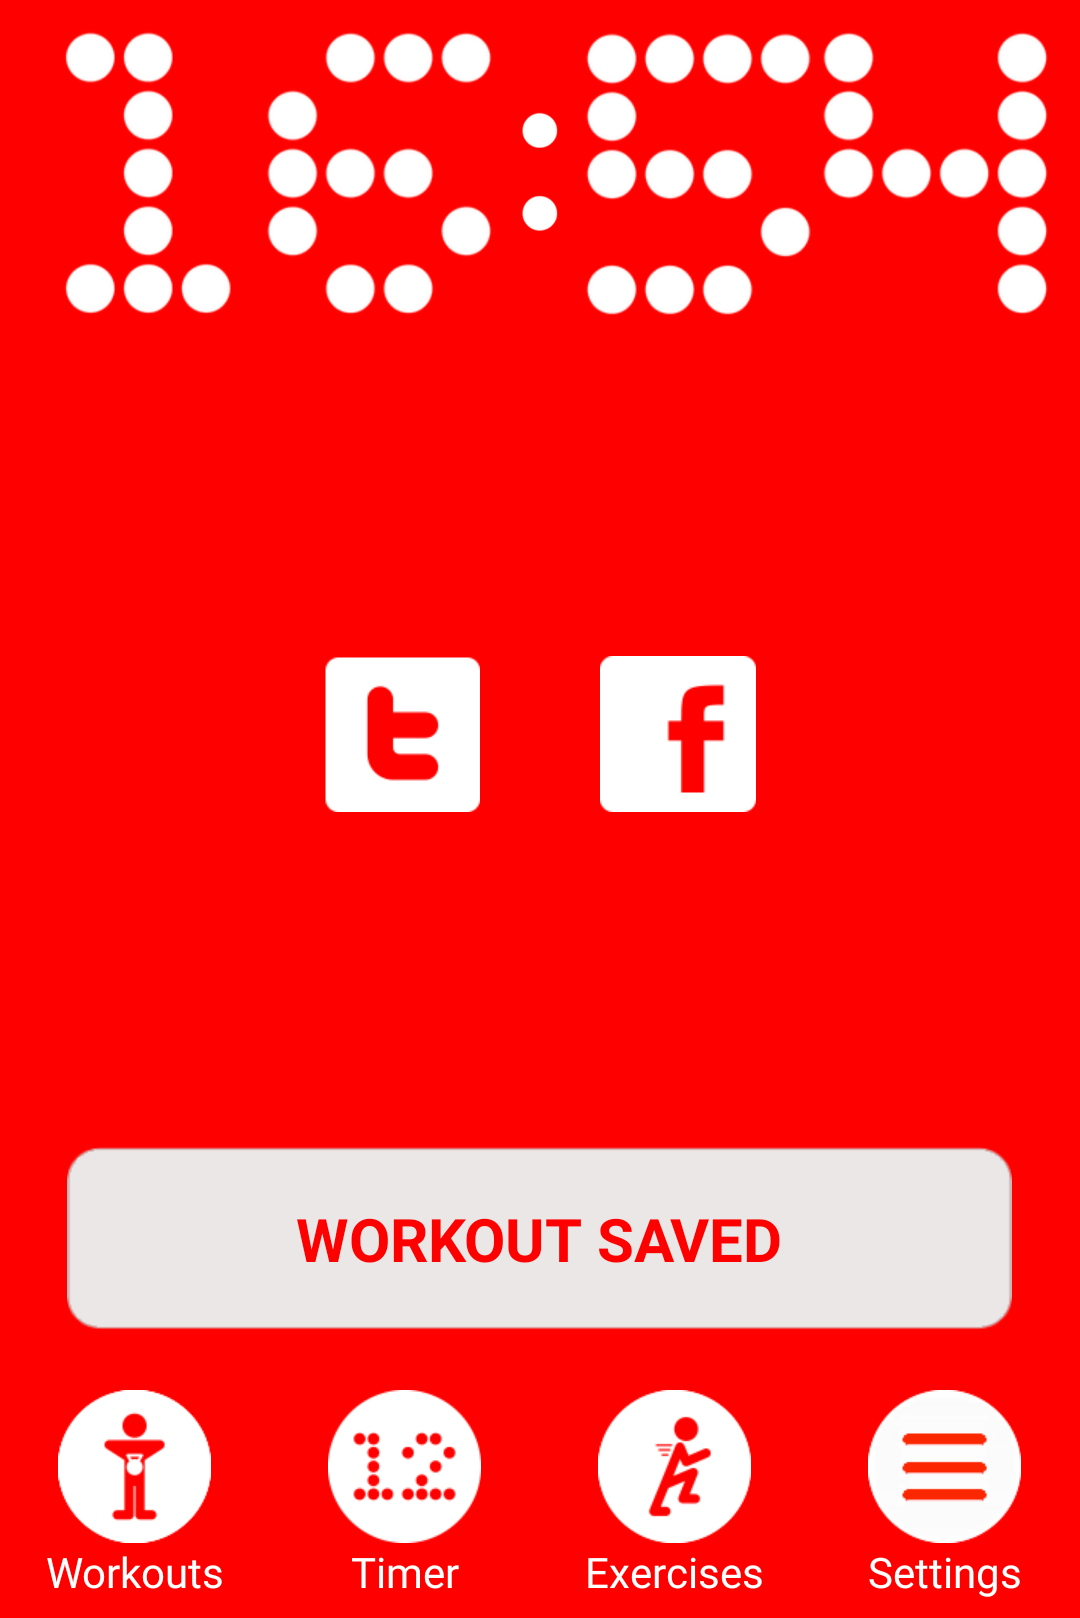 In less than 17 minutes, I completed a challenge workout, saved my time, and will compare this time to the next time I do this challenge workout.